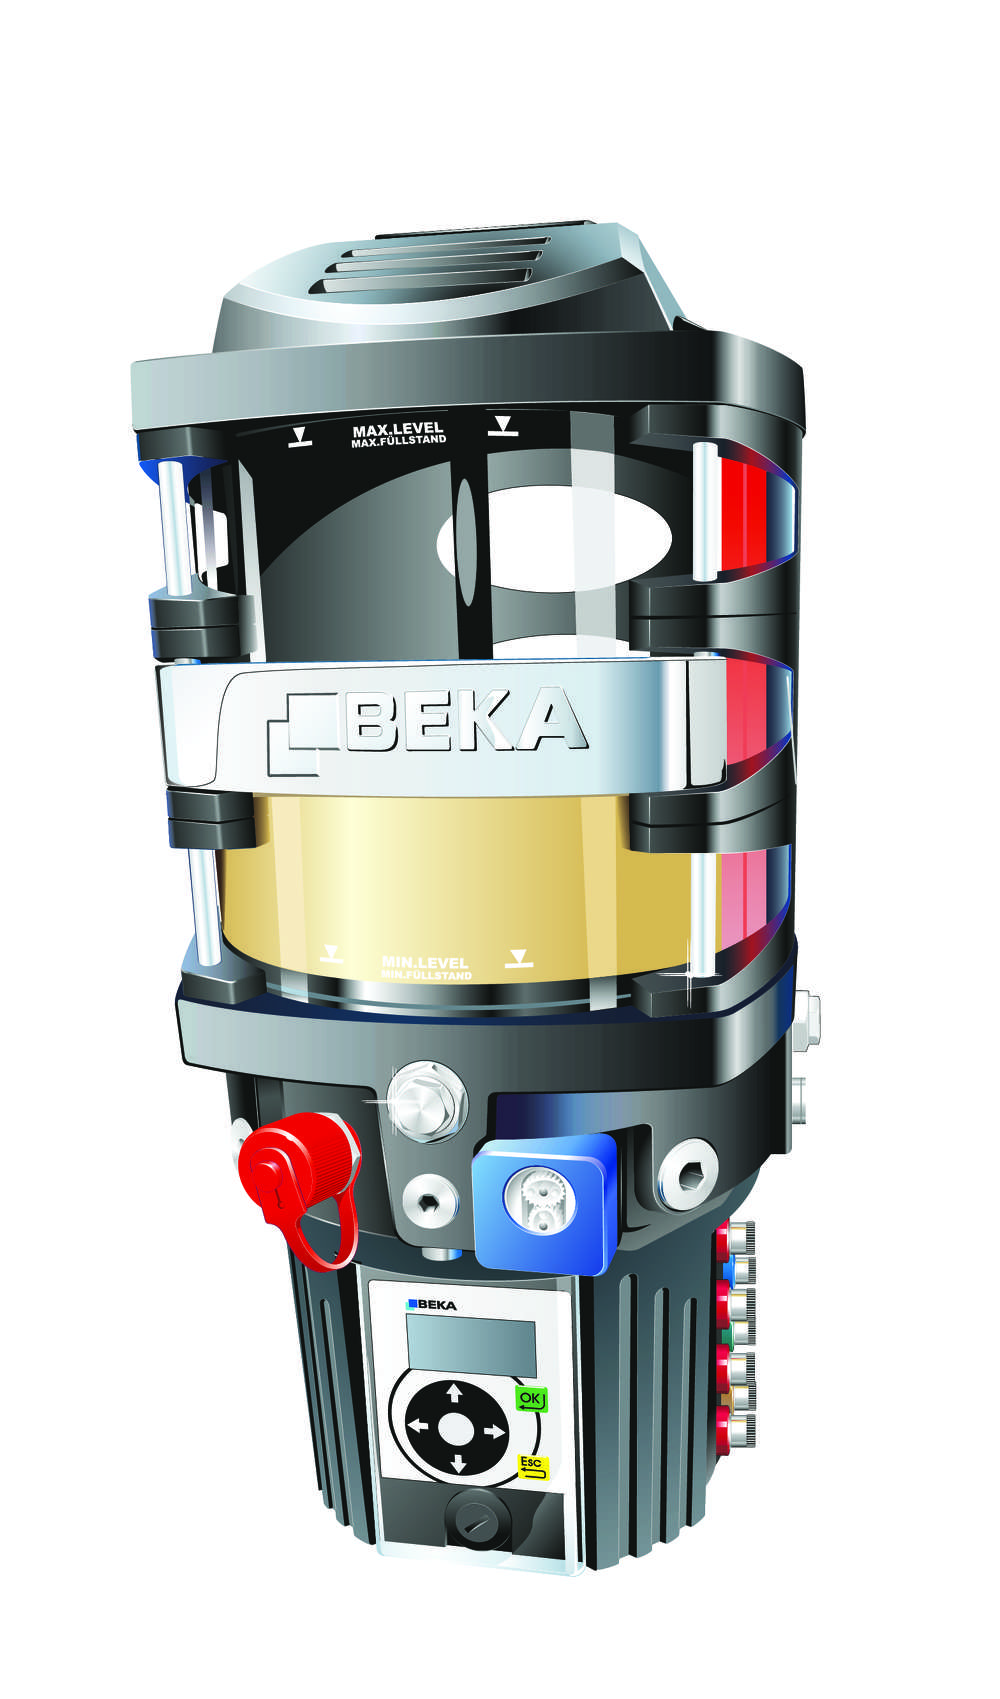 BEKA Giga Plus single unit.